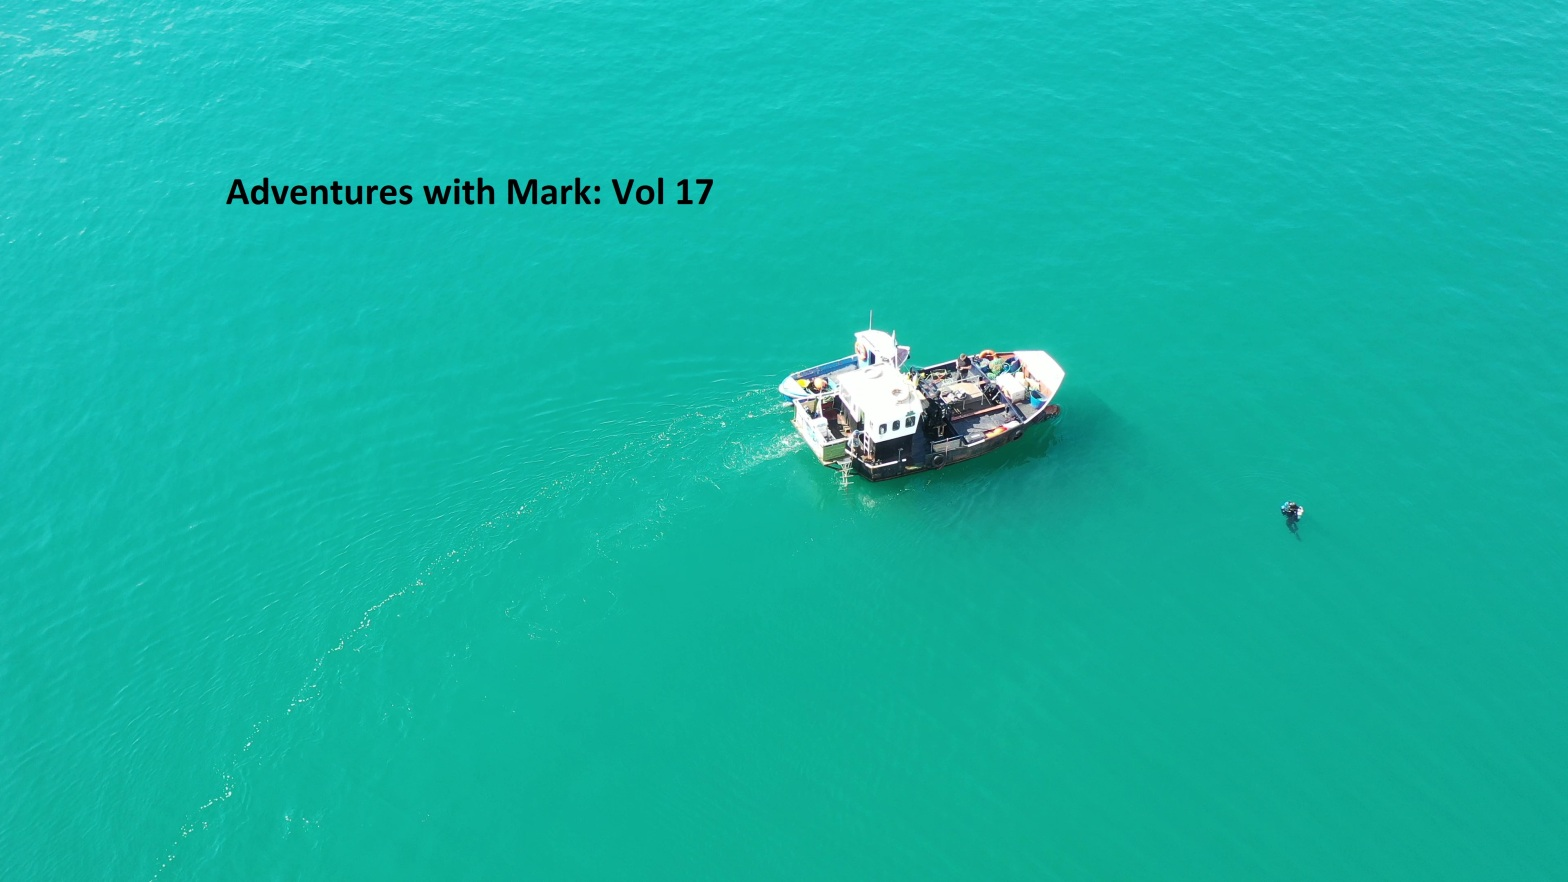 Wreck Diving ¦ Scallop Diving ¦ Filming ¦ An Awesome Week! ¦ Adventures with Mark Vol 17 ¦ Latest Vlog...